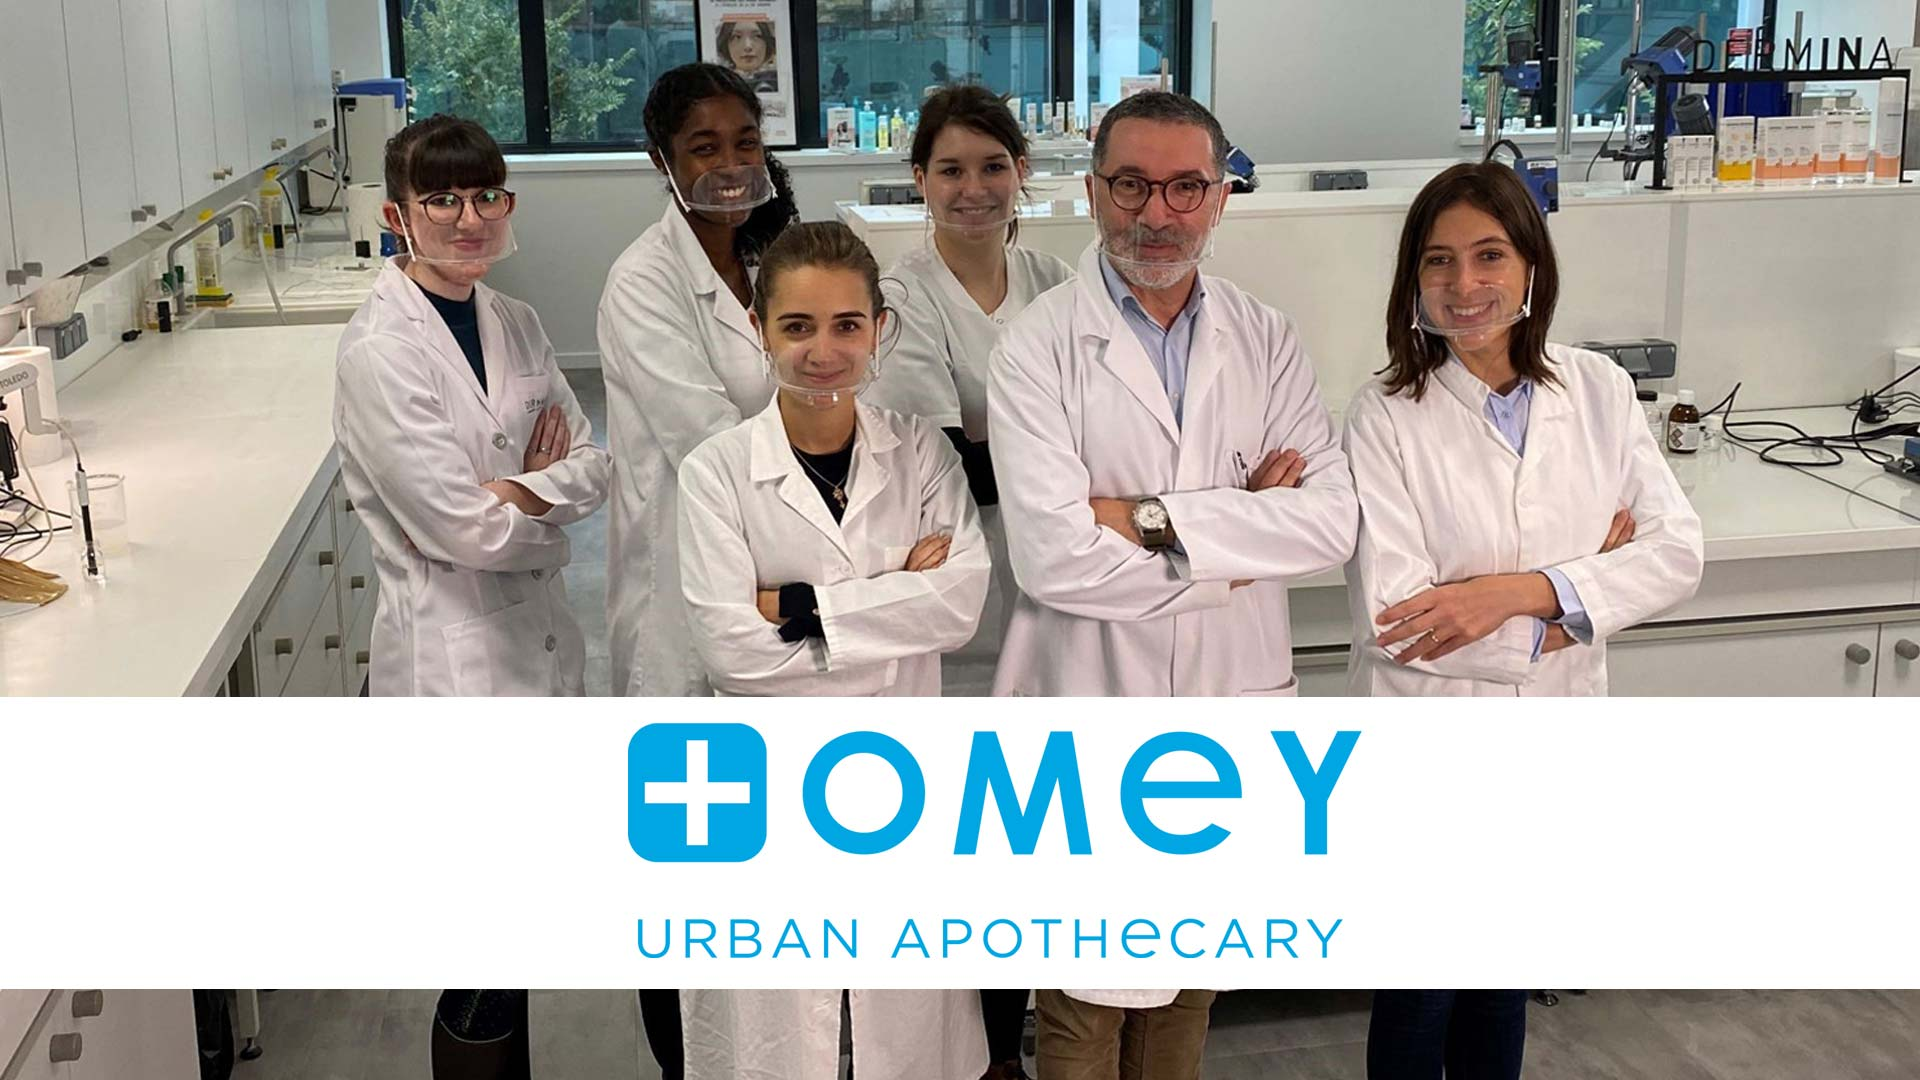 Combining Excellency and Innovation in Cosmetics - OMEY Group's rise in Paris Region